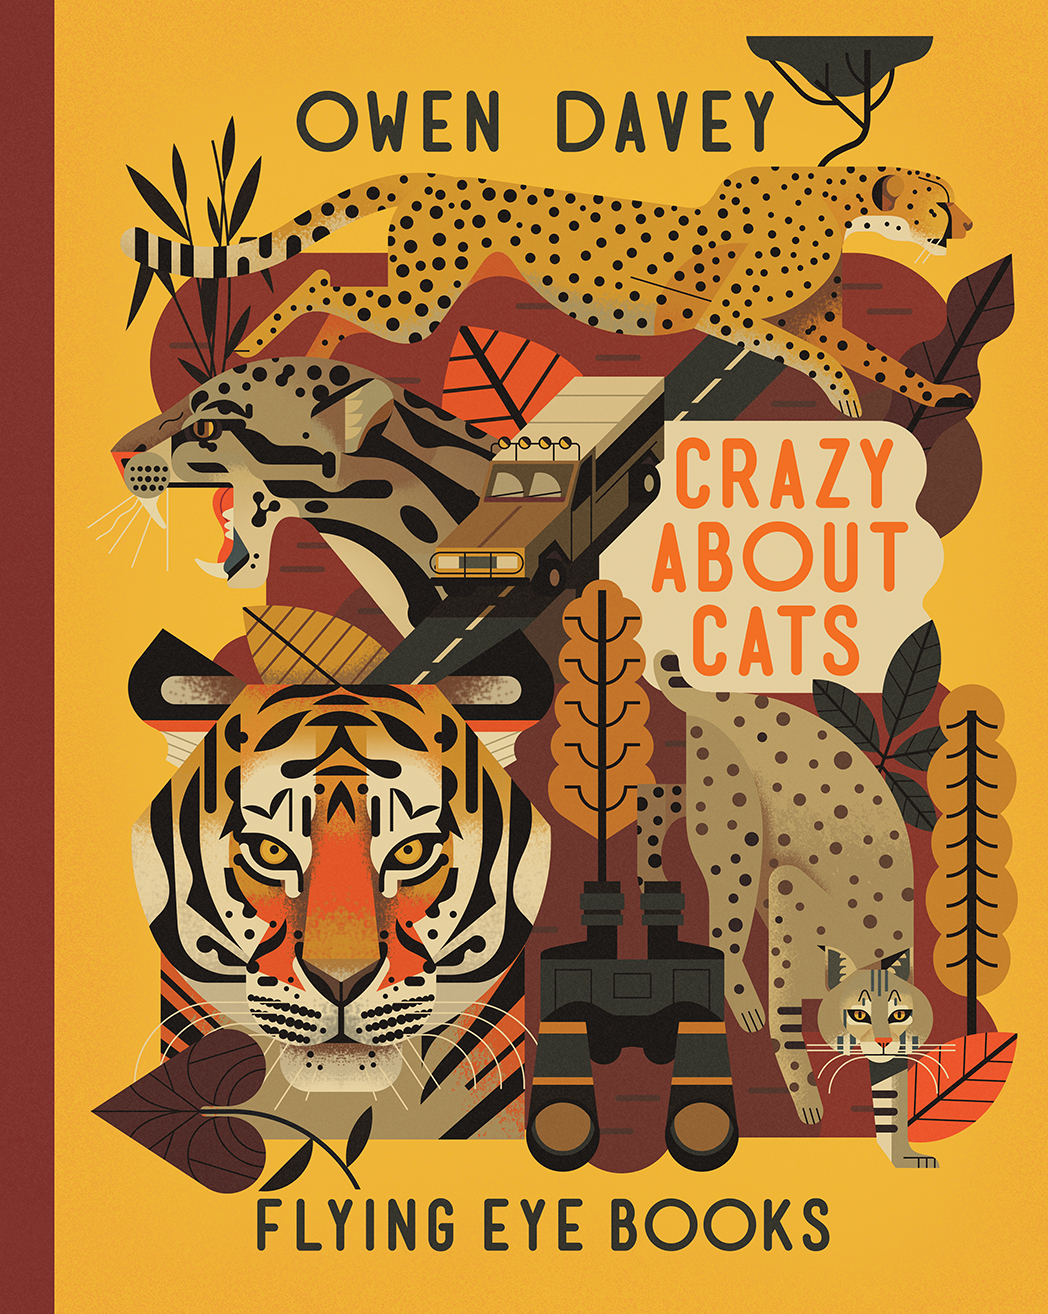 CRAZY ABOUT CATS